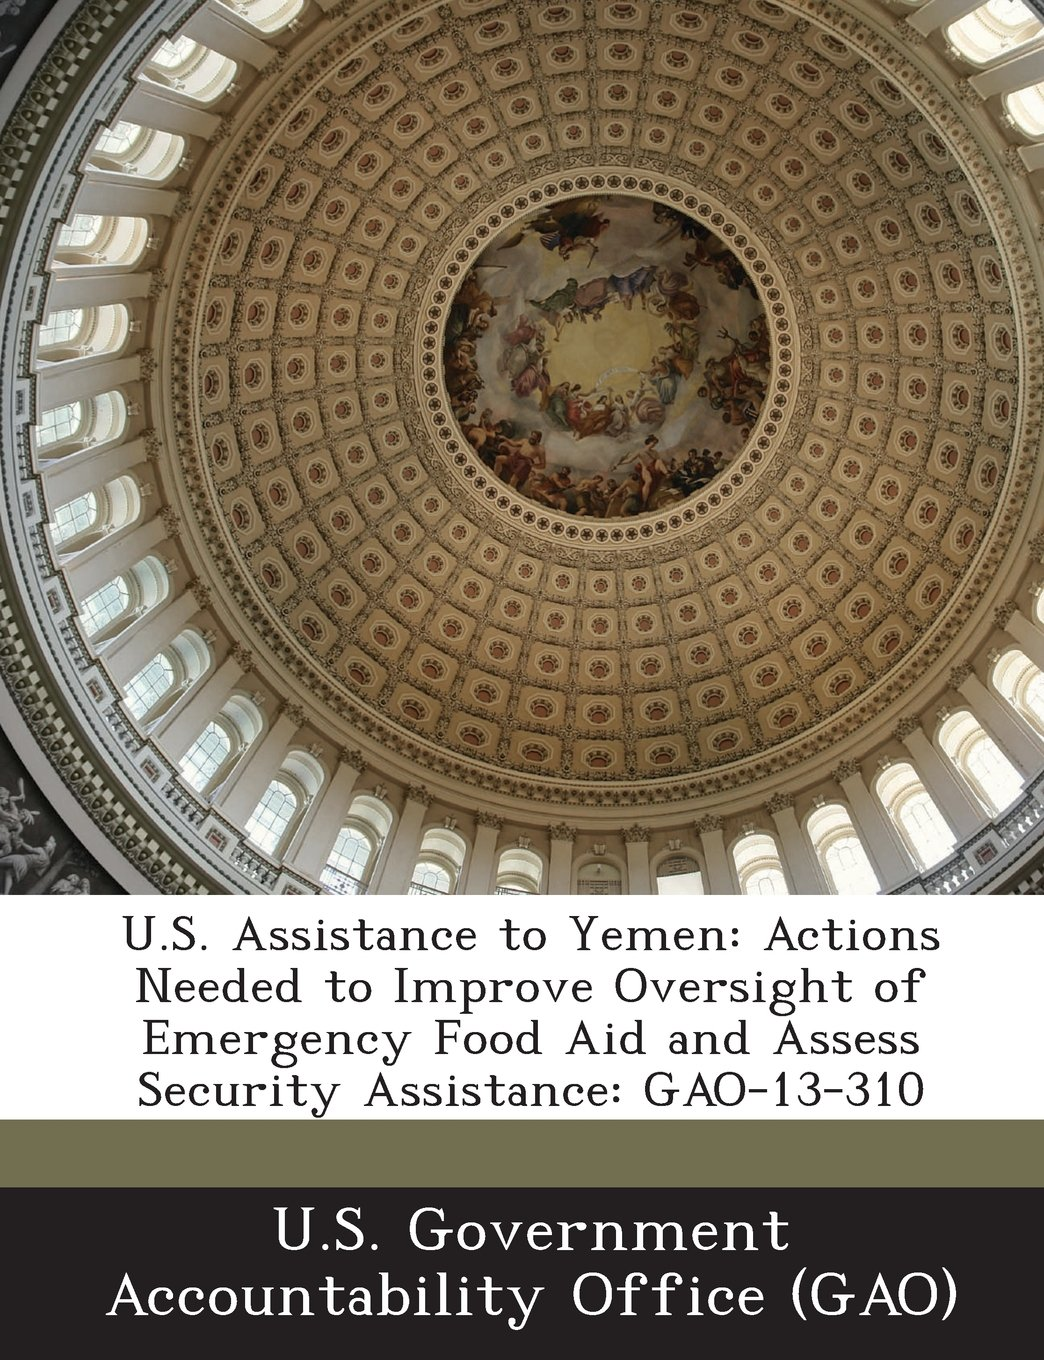 Download U.S. Assistance to Yemen: Actions Needed to Improve Oversight of Emergency Food Aid and Assess Security Assistance: GAO-13-310 ebook